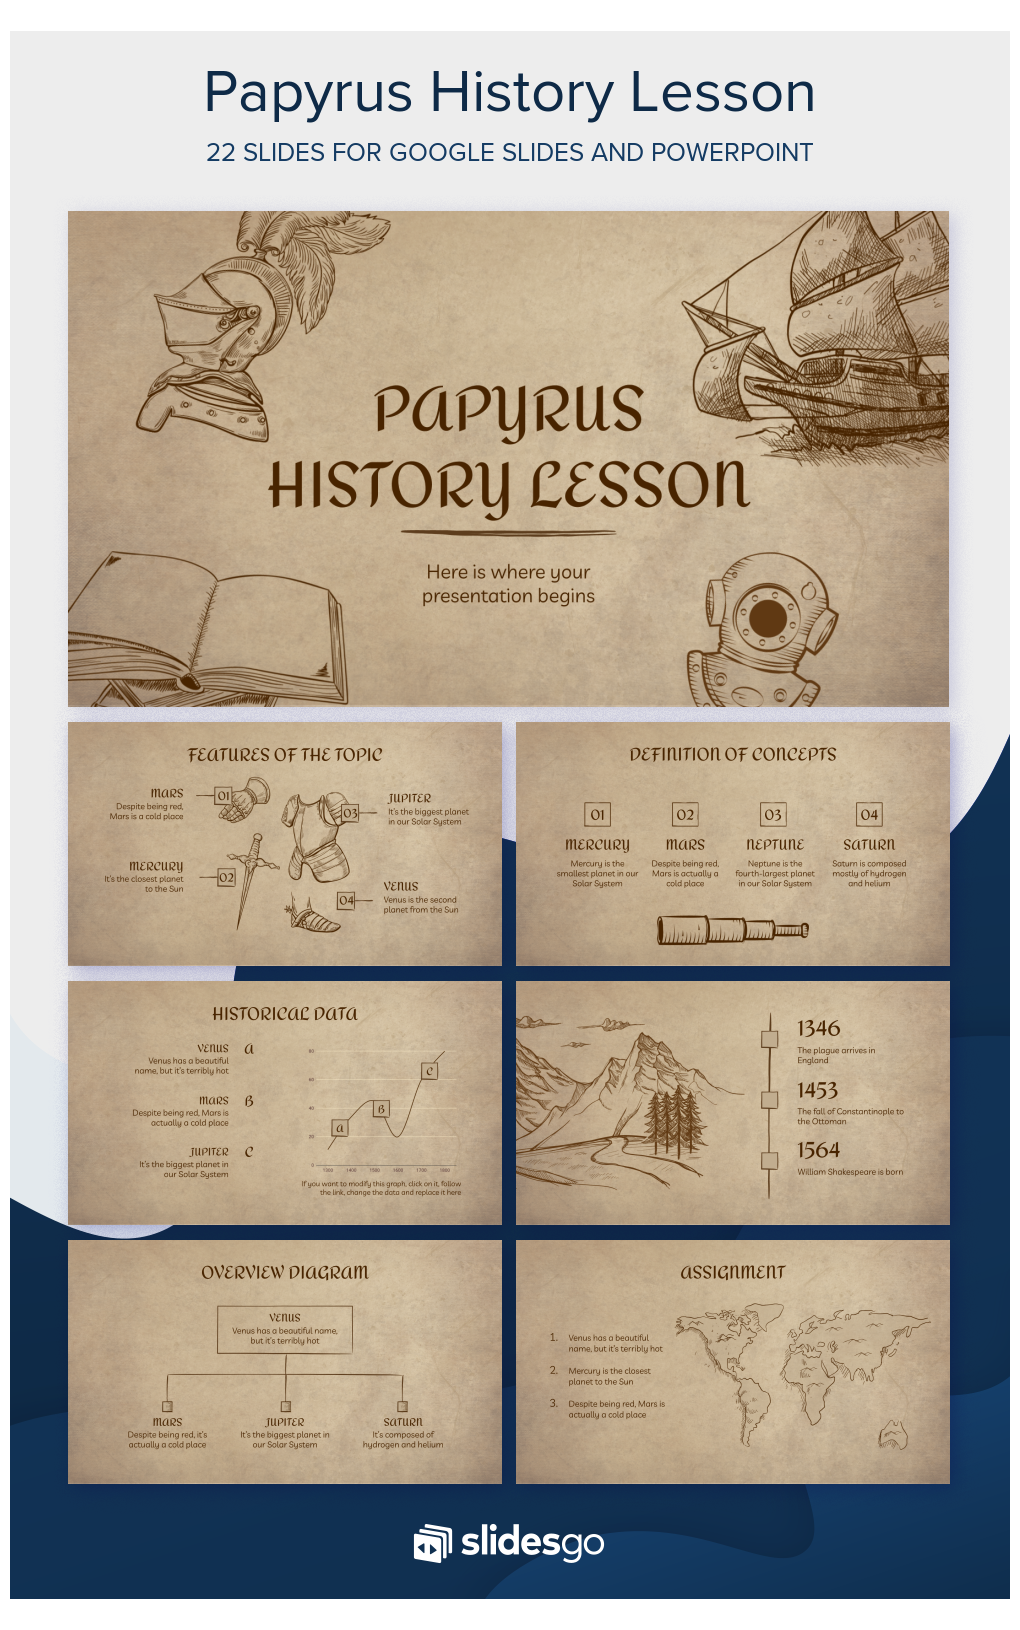 Papyrus History Lesson Presentation Free Google Slides Theme And Powerpoint Template History Powerpoint Templates Historypowerpointtemplates Amaze Your St ในป 2021